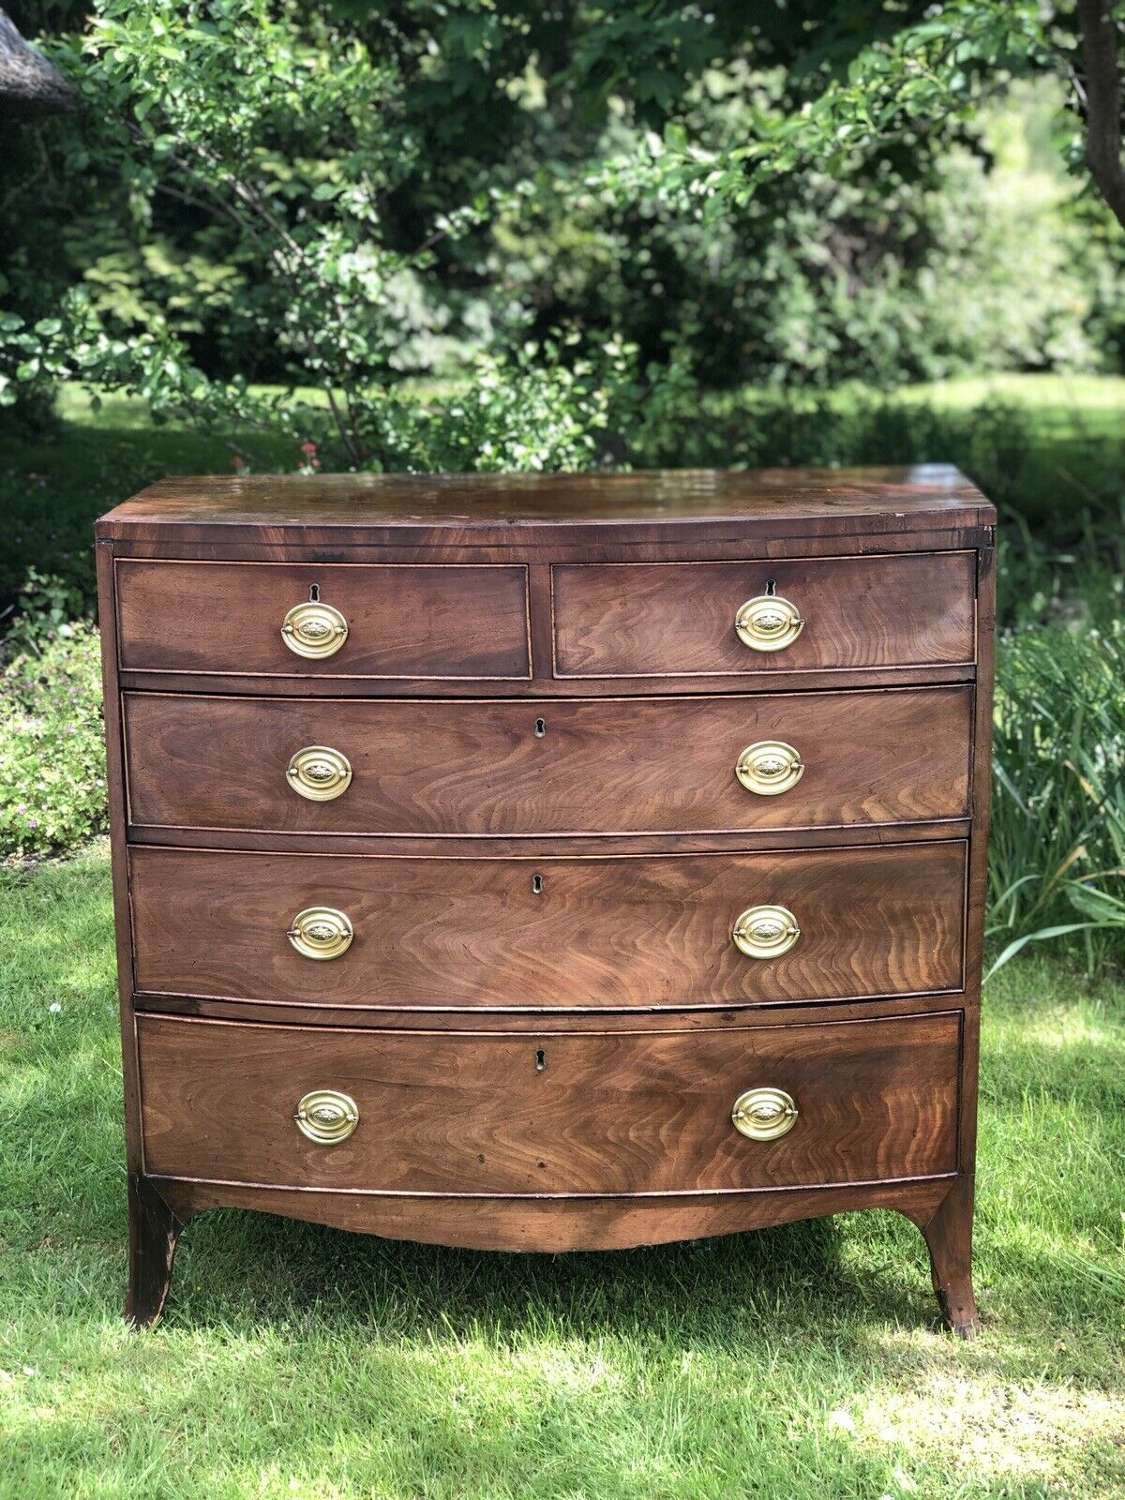 Regency bow fronted mahogany chest of drawers 1820.